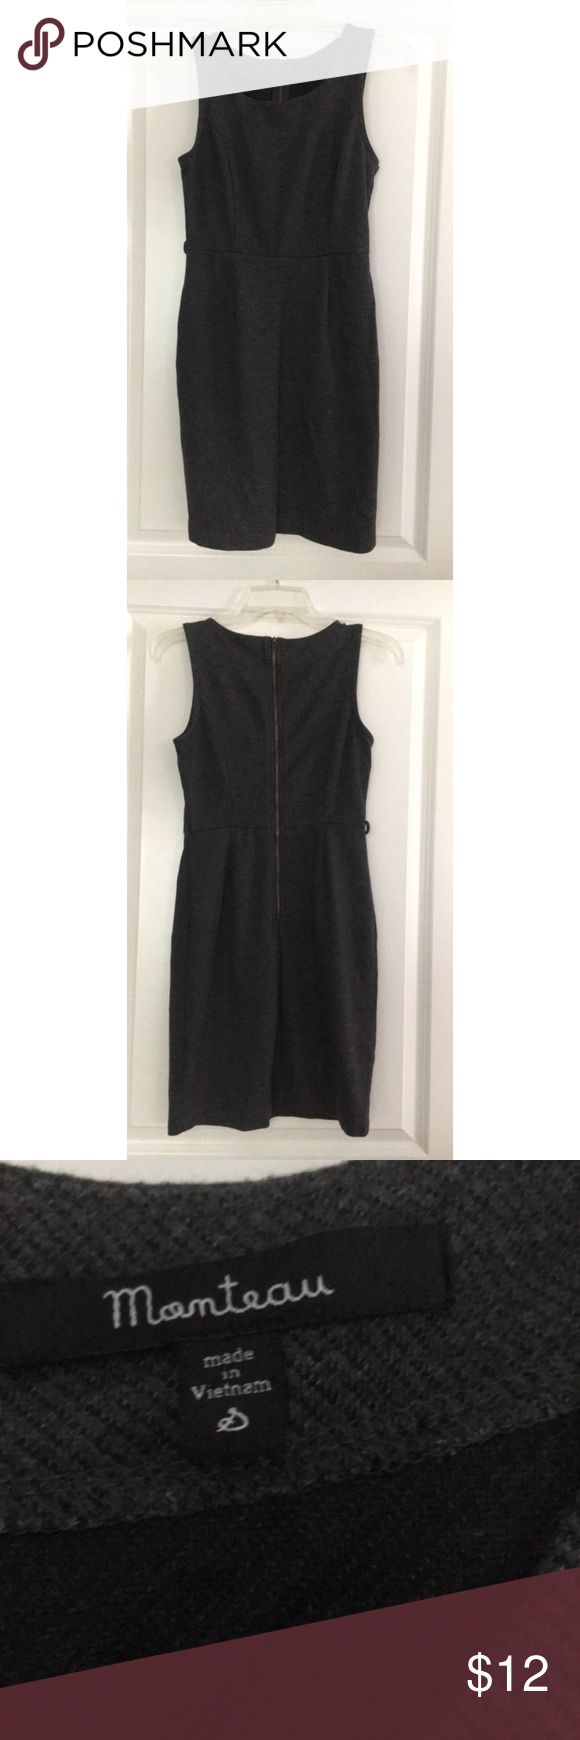 Charcoal grey dress Charcoal grey dress, zips in the back & loop holes for thin belt. Never worn. Monteau Dresses